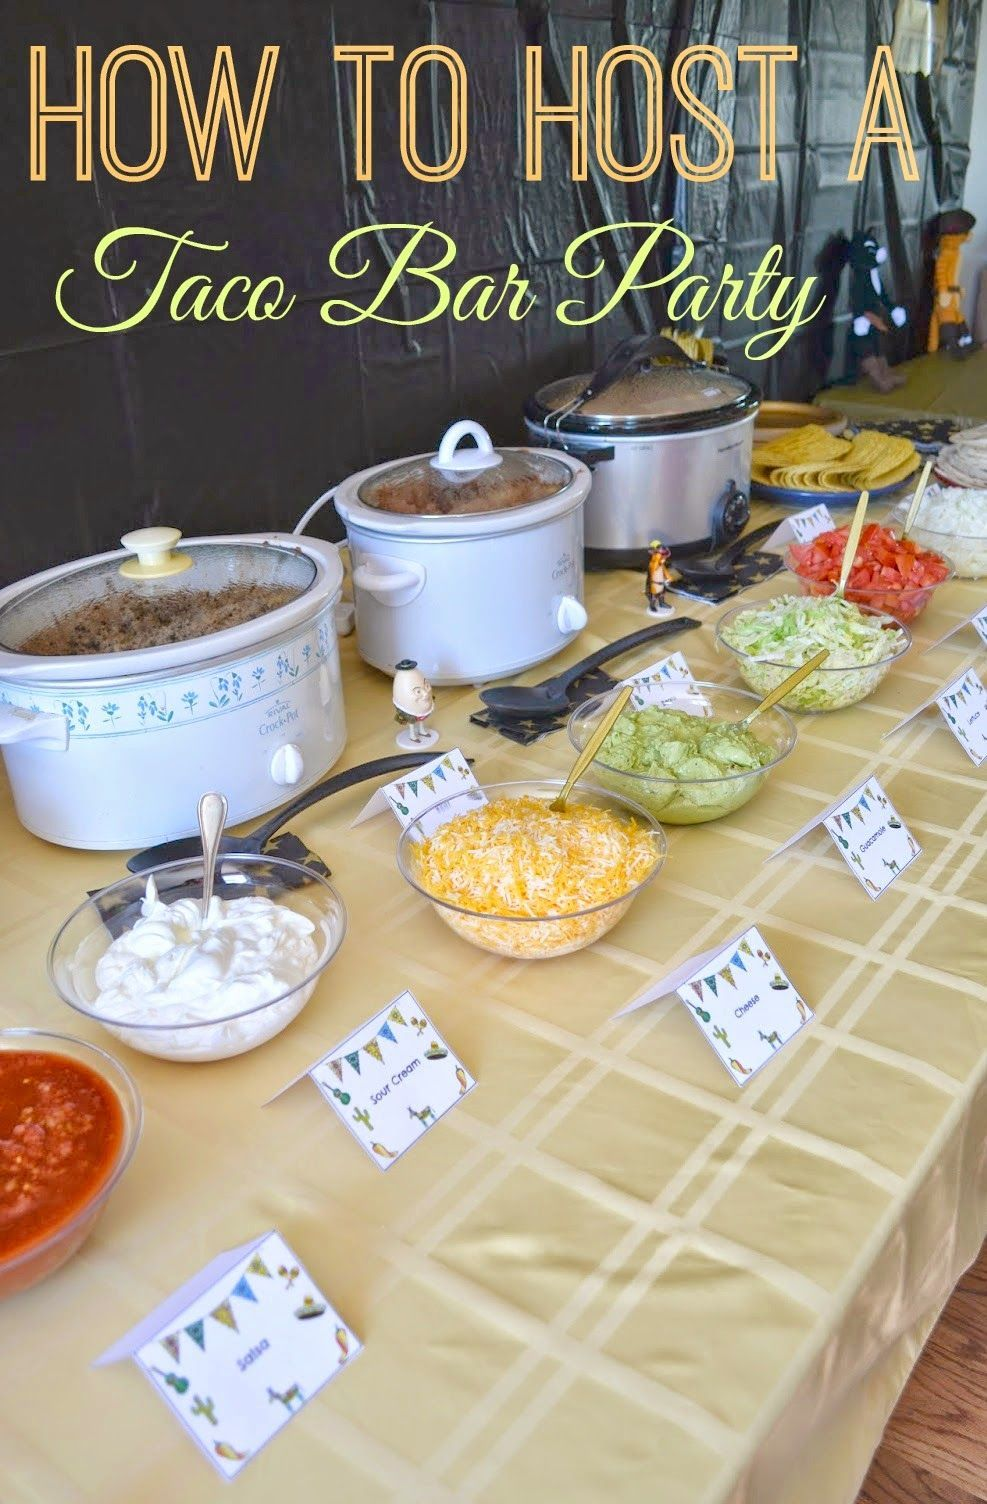 25 backyard party ideas to go from a bomb to an awesome summer